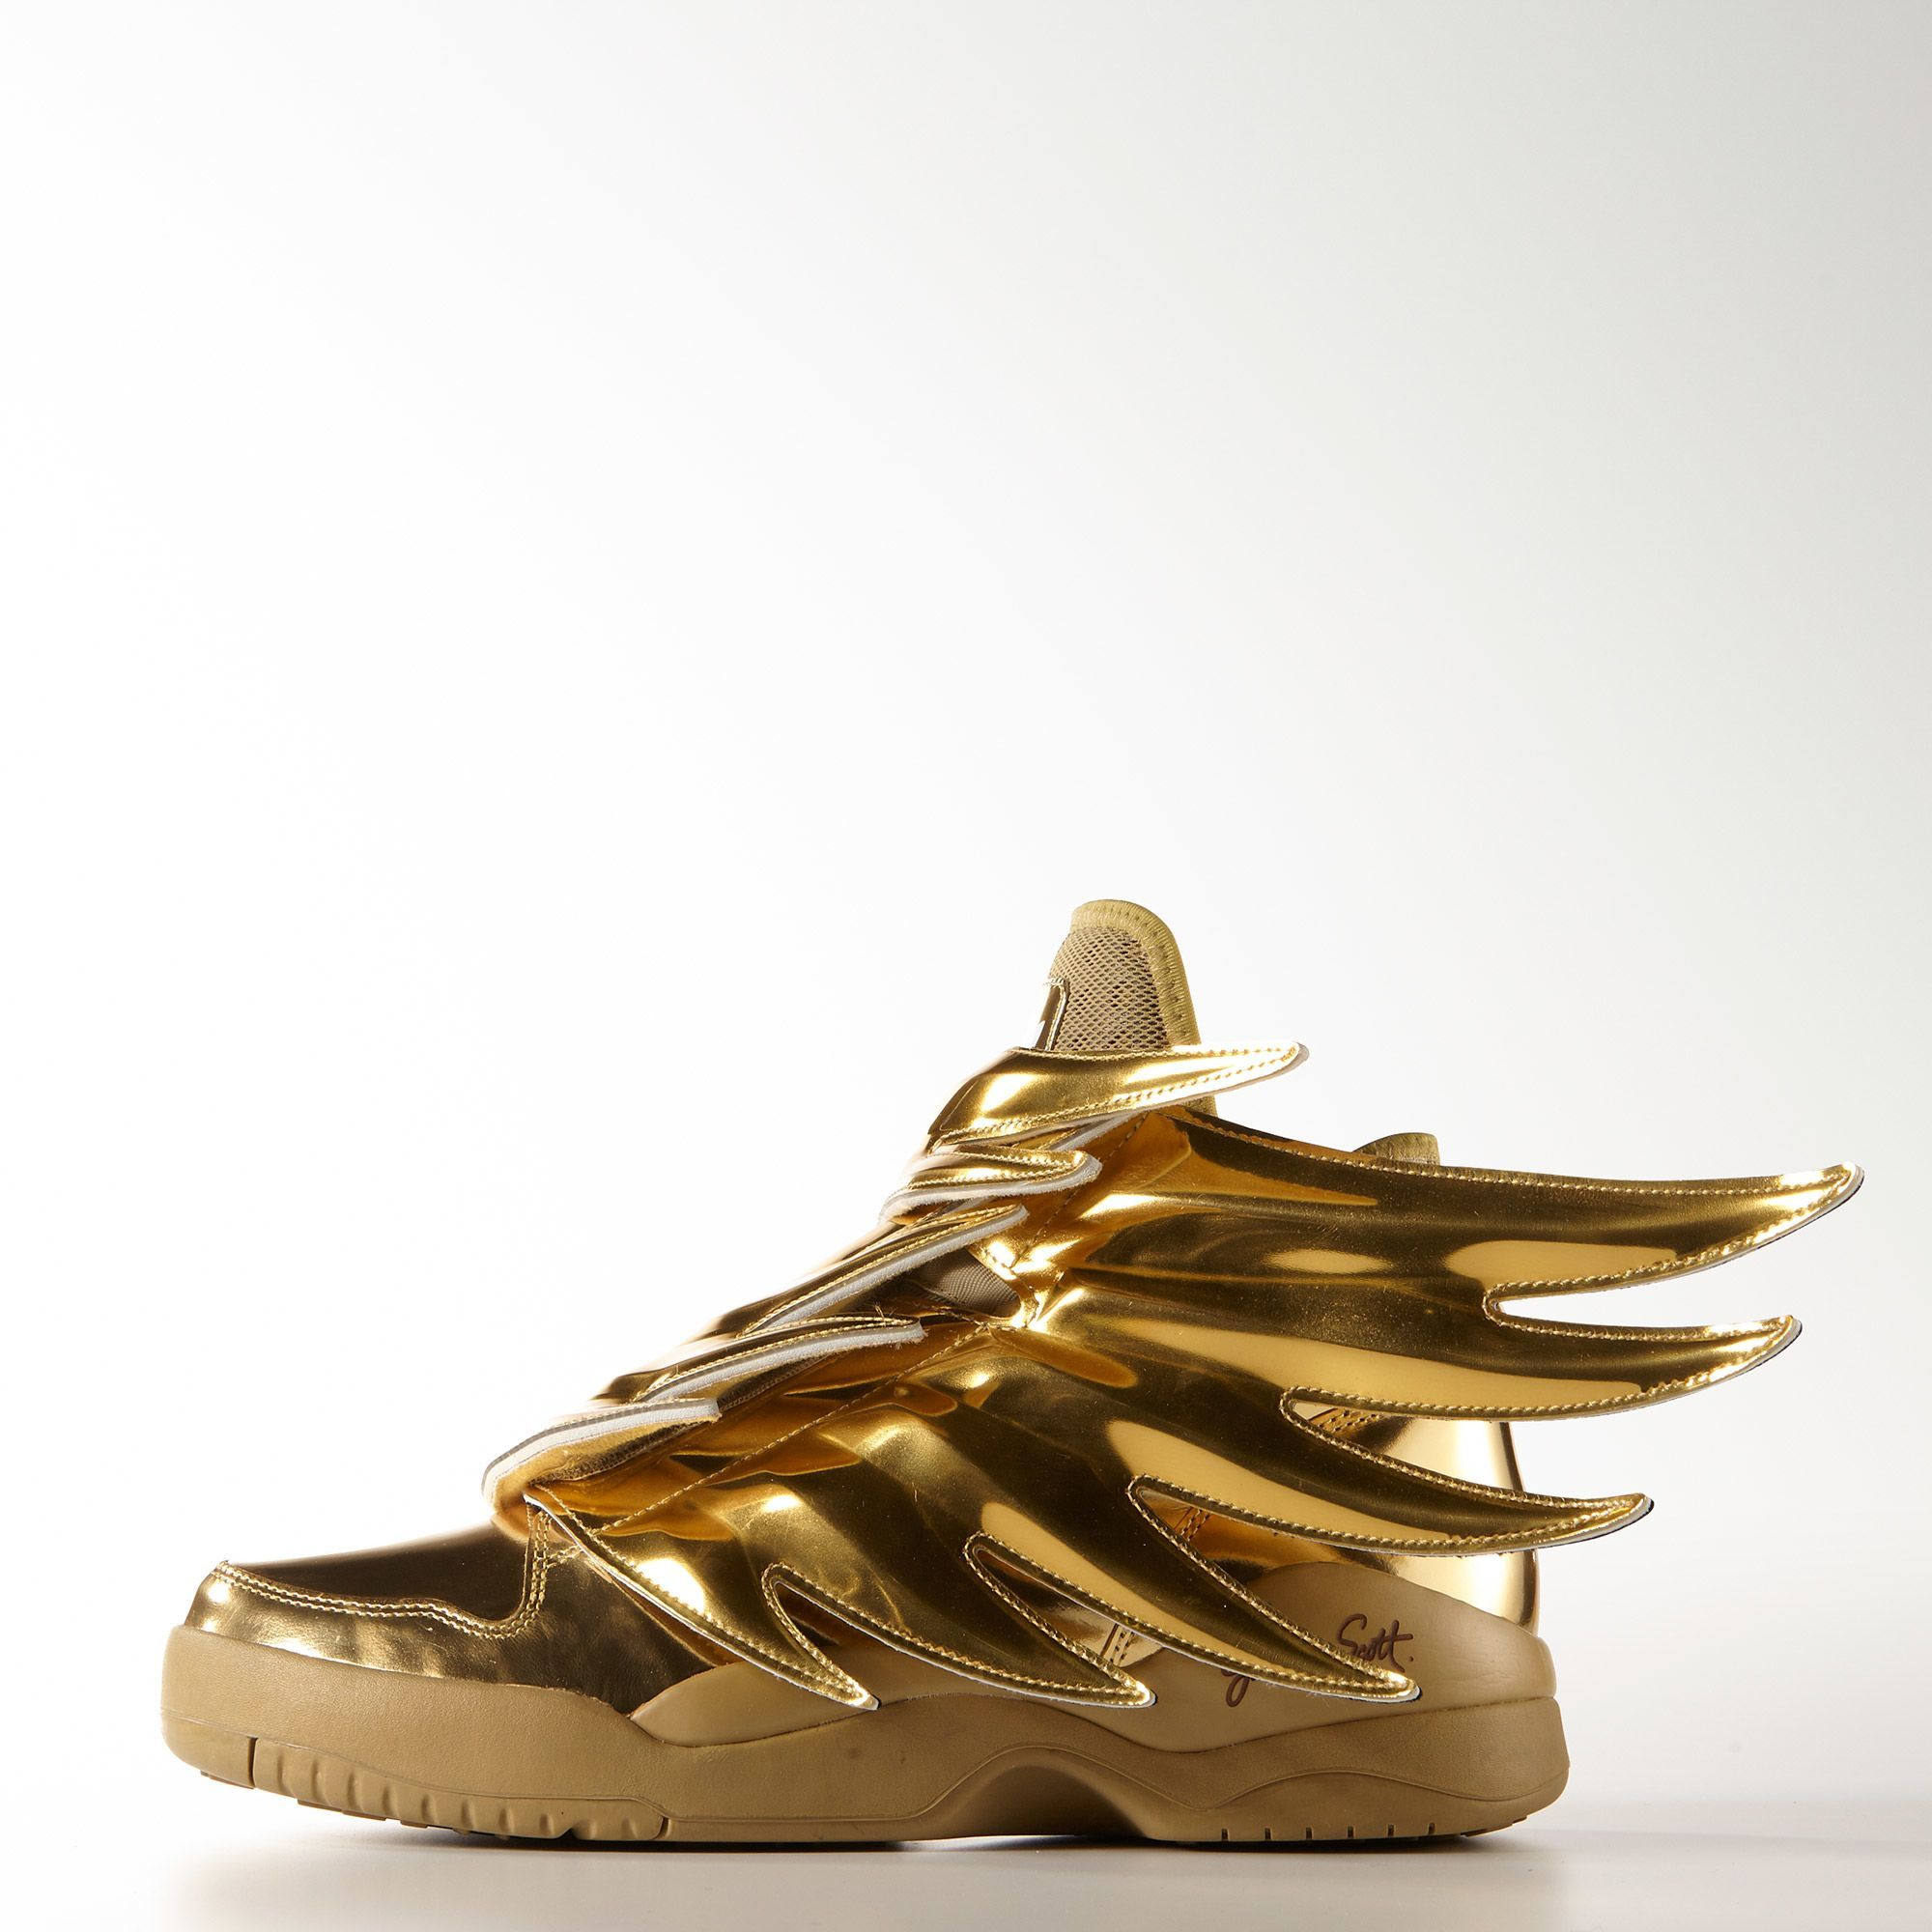 adidas shoes with wings images photography 618199